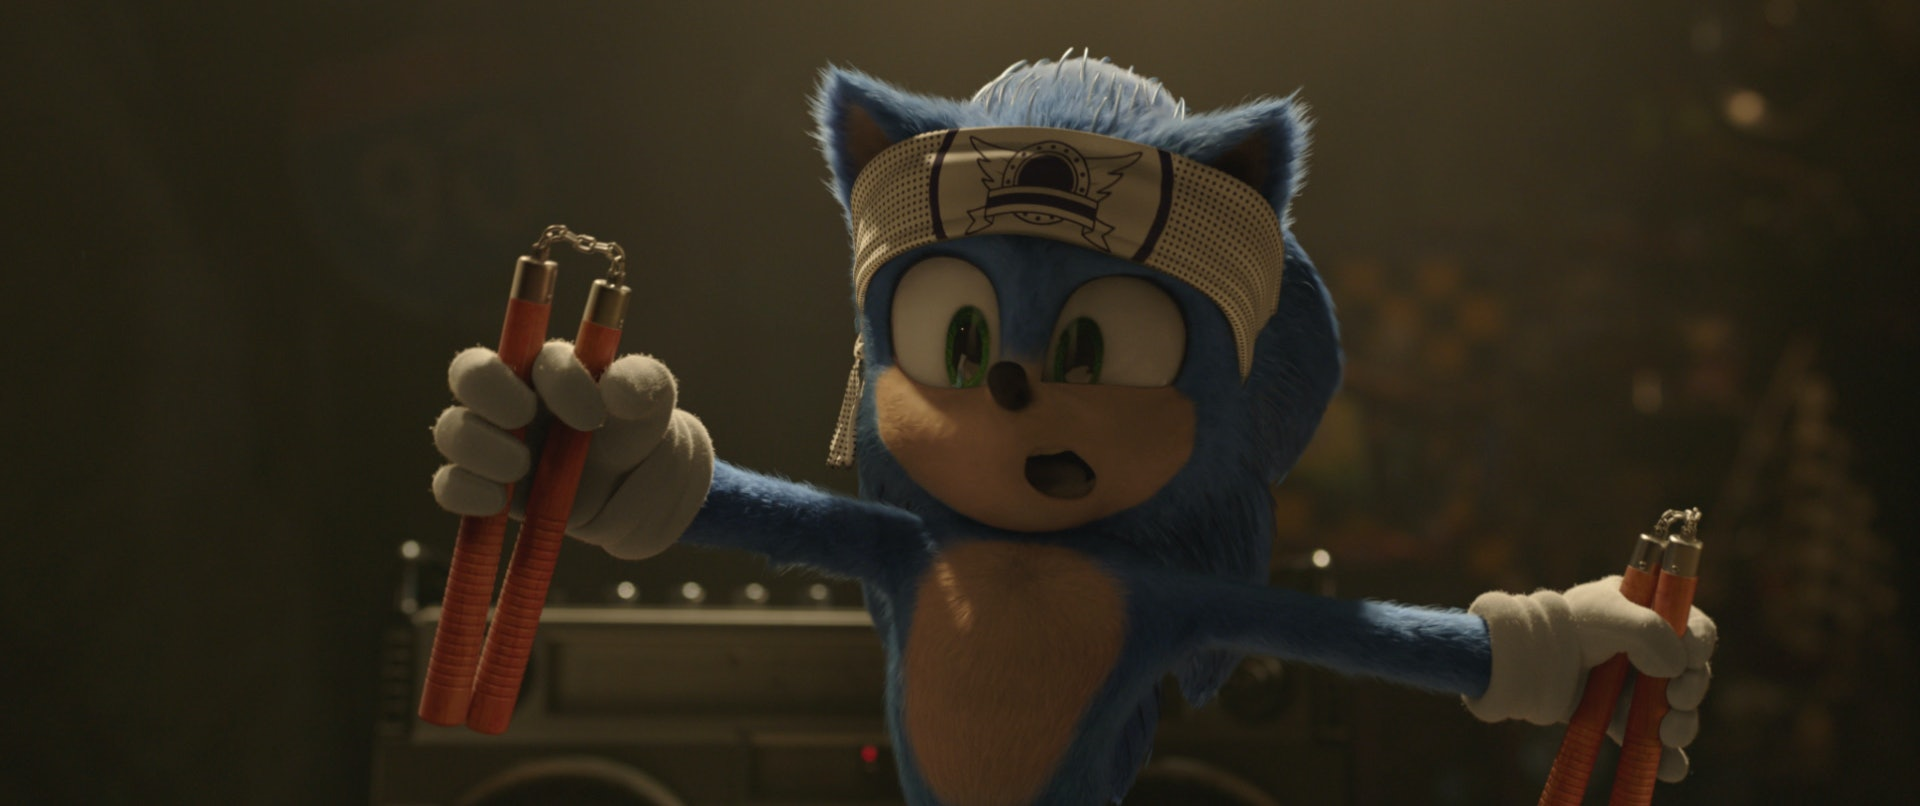 Sonic The Hedgehog 2 Release Date Trailer Plot Spoilers And